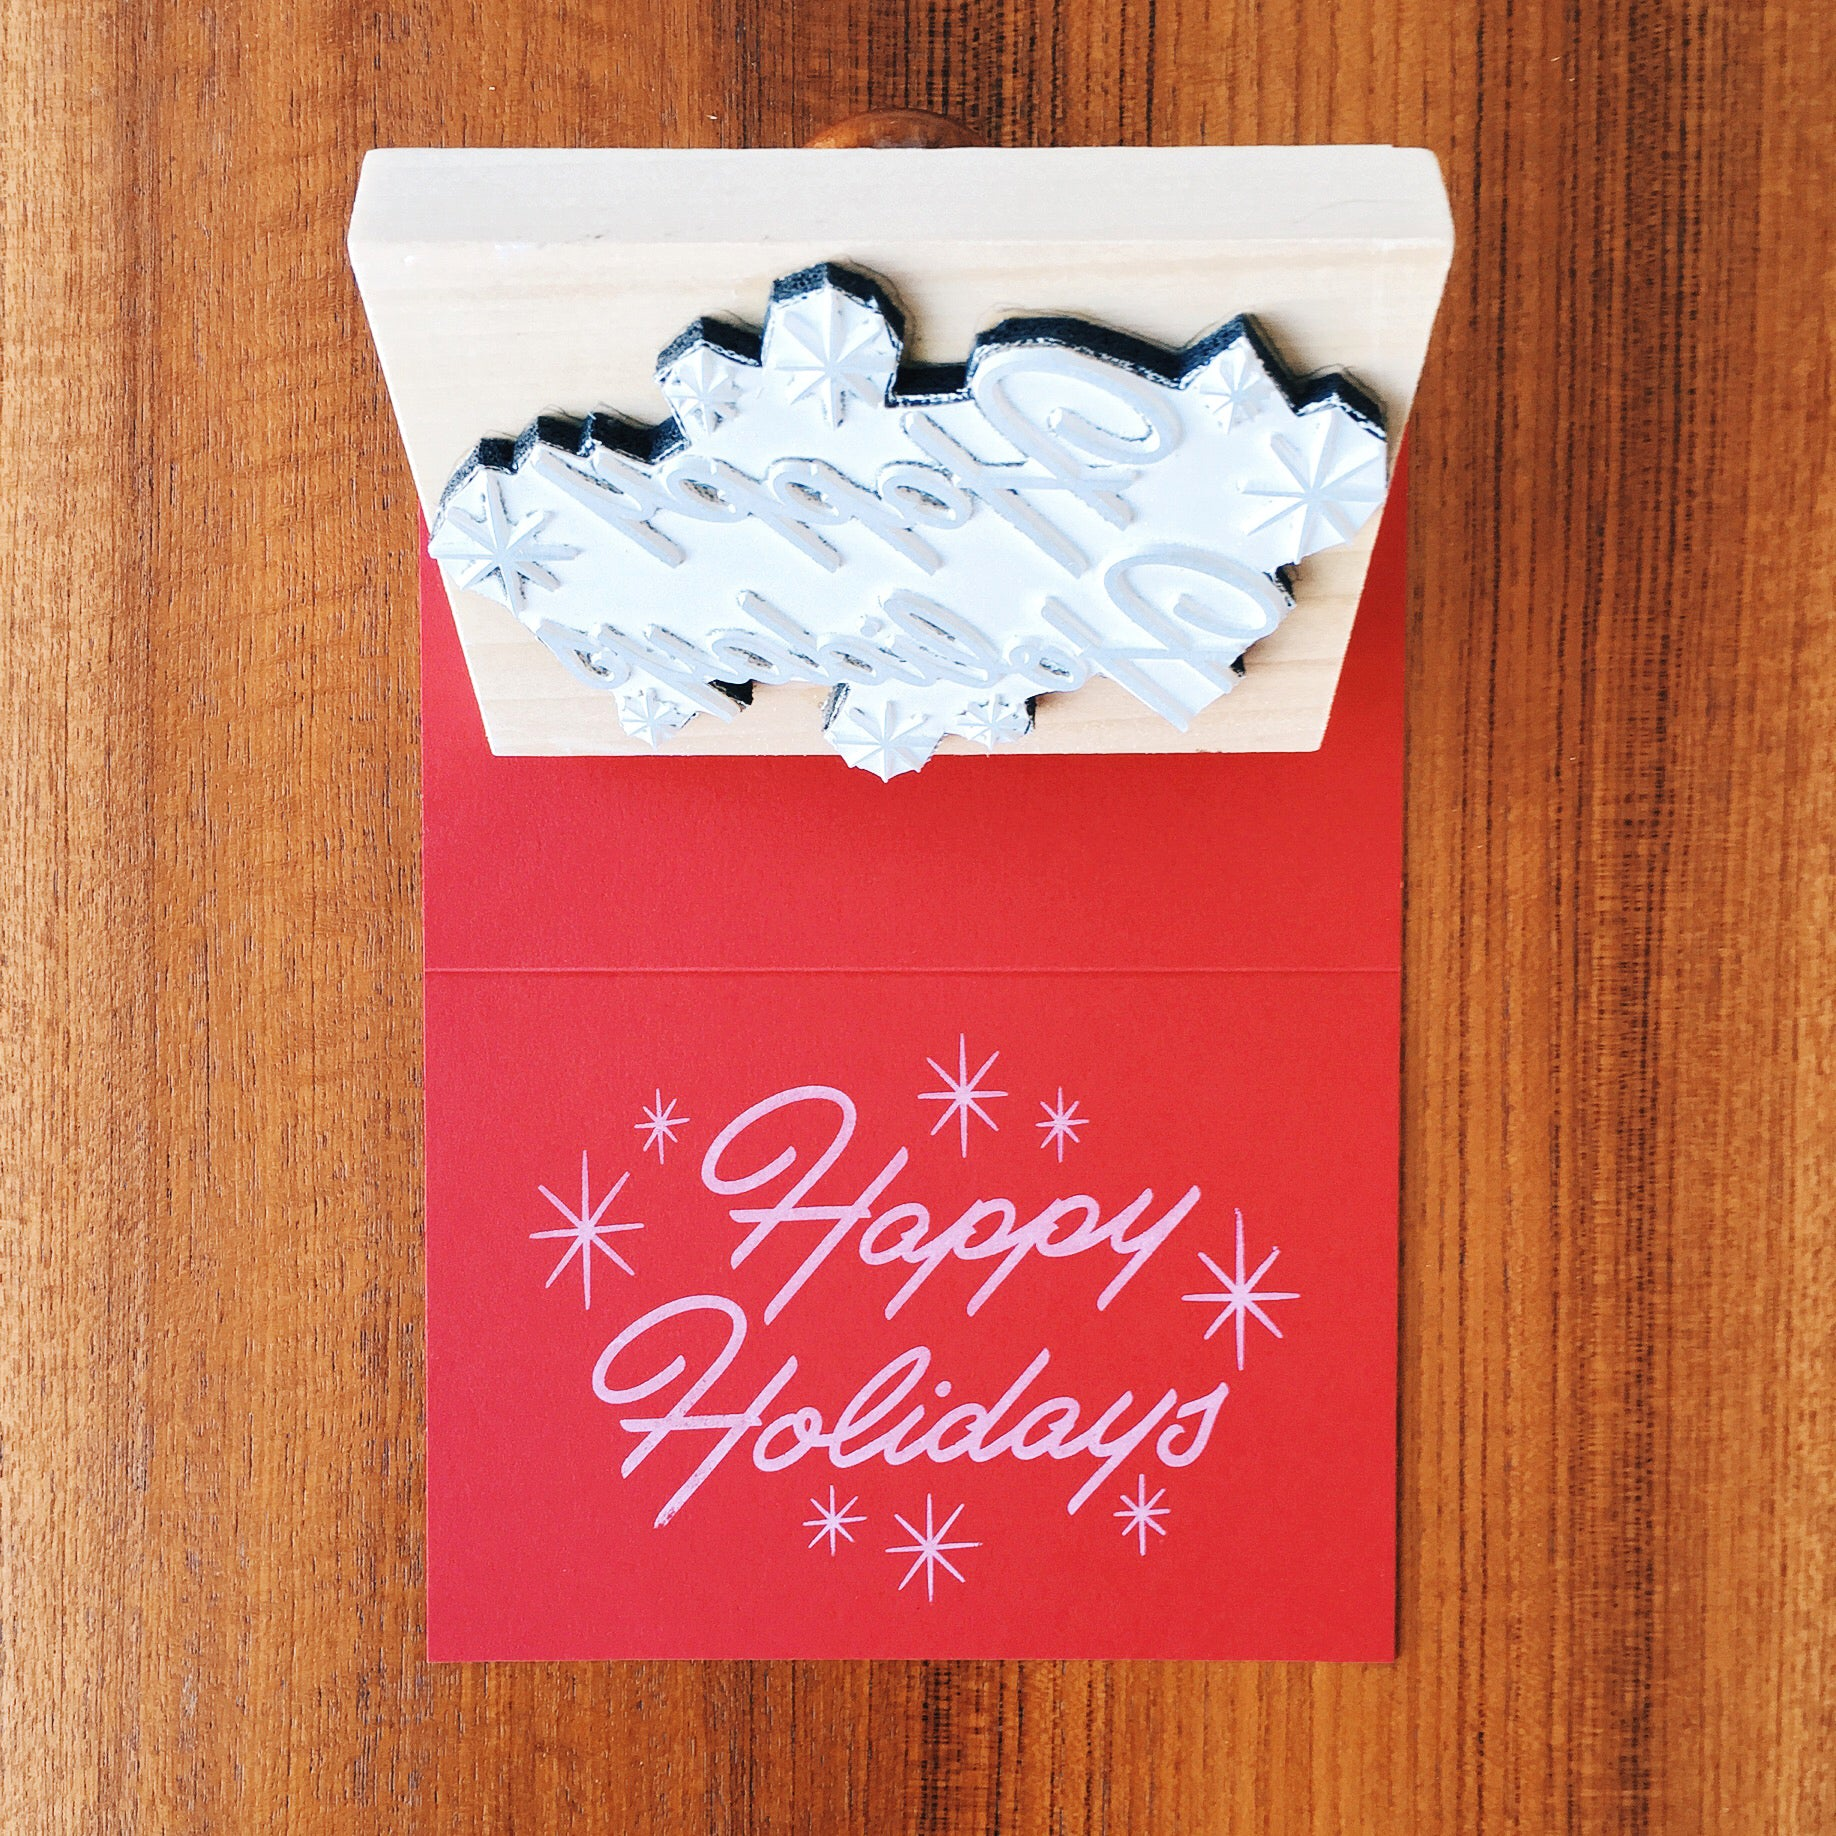 Happy Holidays and Lumi rubber stamp.